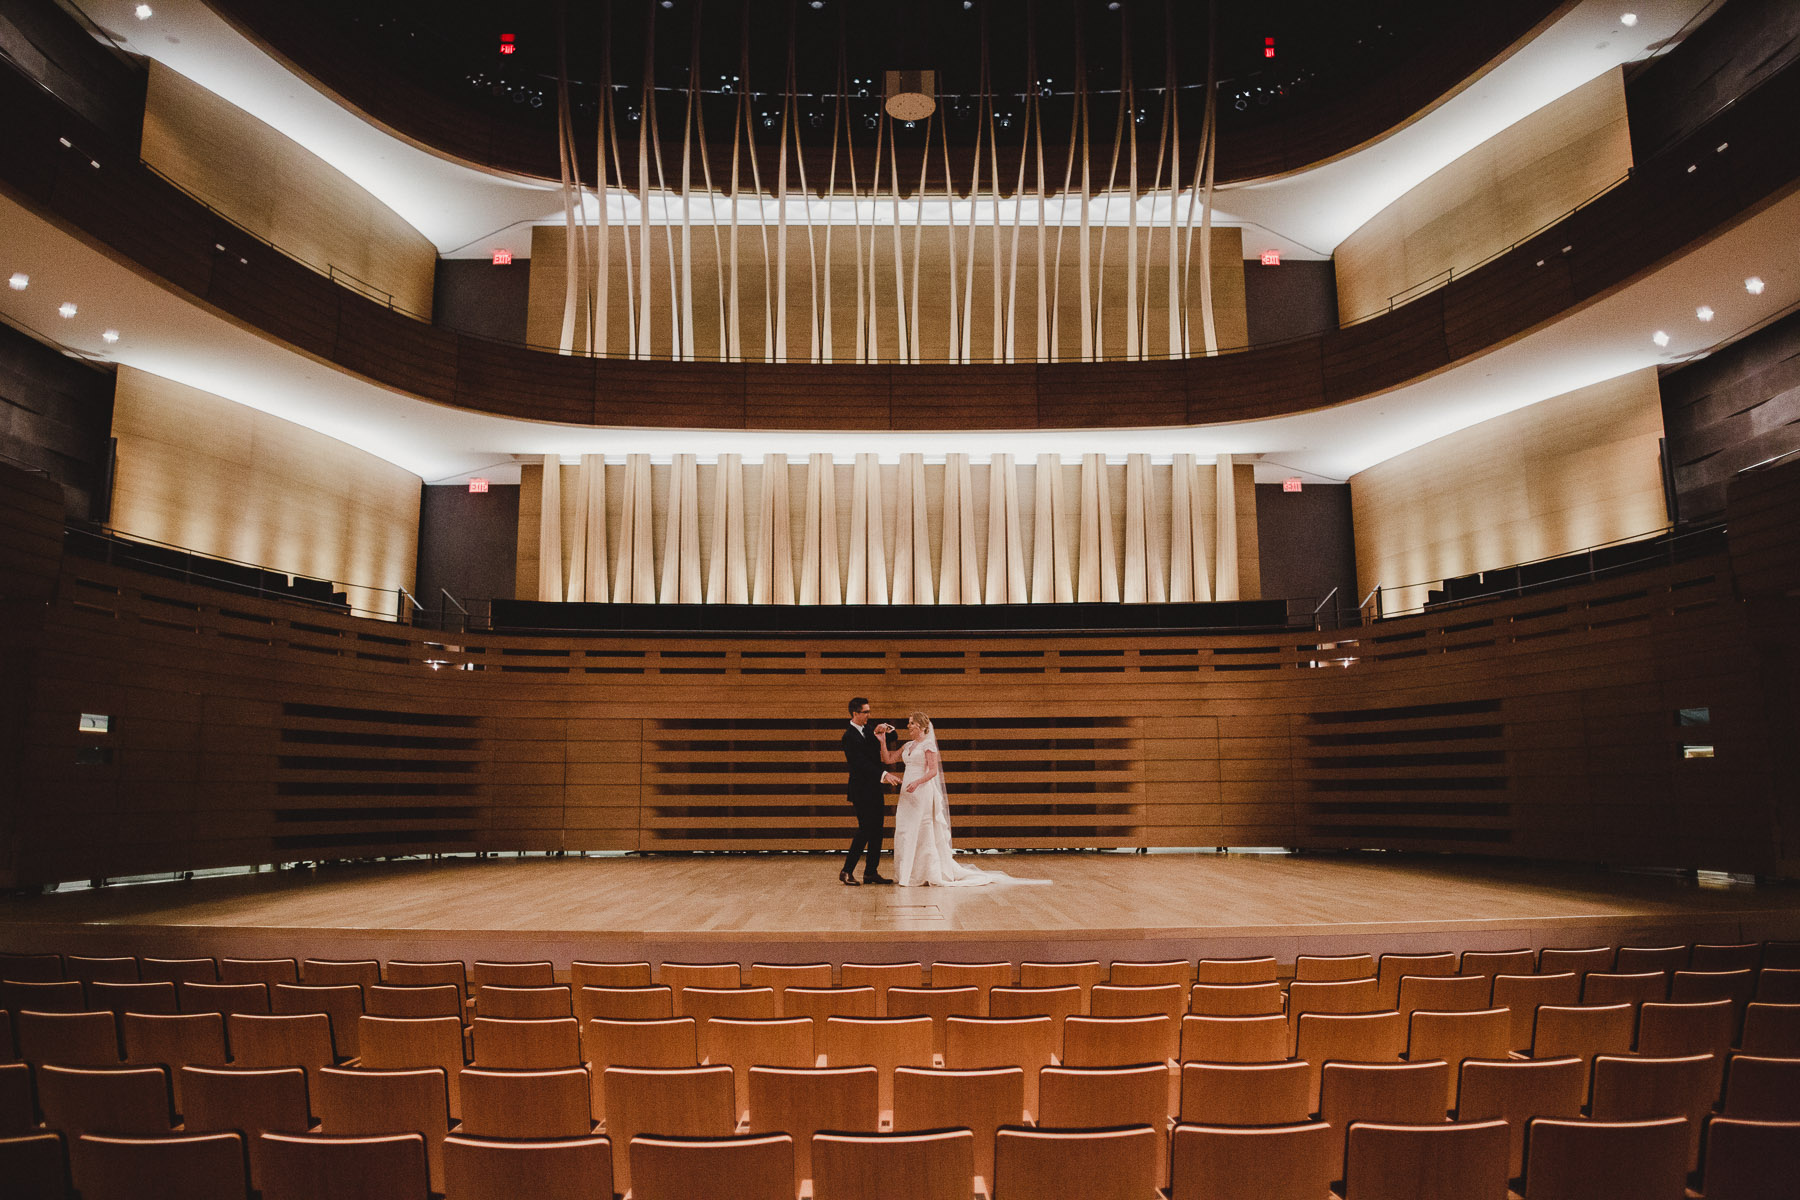 Royal Conservatory Of Music Wedding Pictures by Avangard PhotographyRoyal Conservatory Of Music Wedding Pictures by Avangard Photography